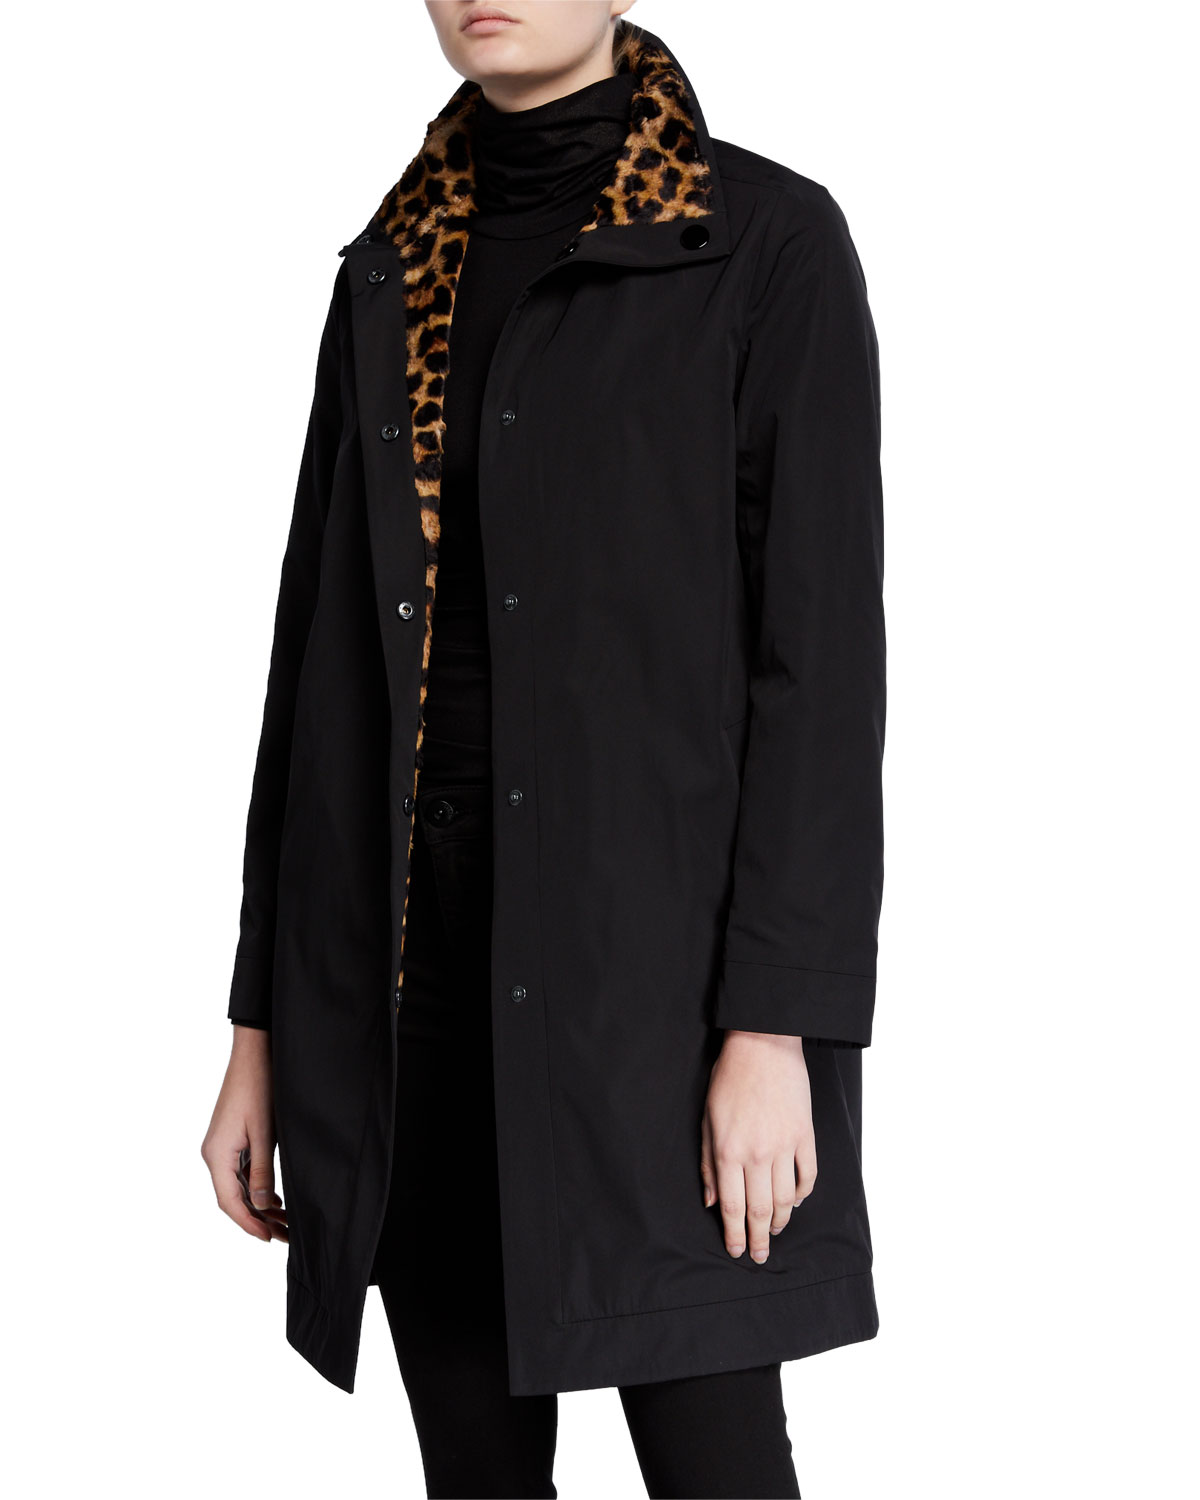 Jane Post Reversible Rain Coat w/ Leopard Print